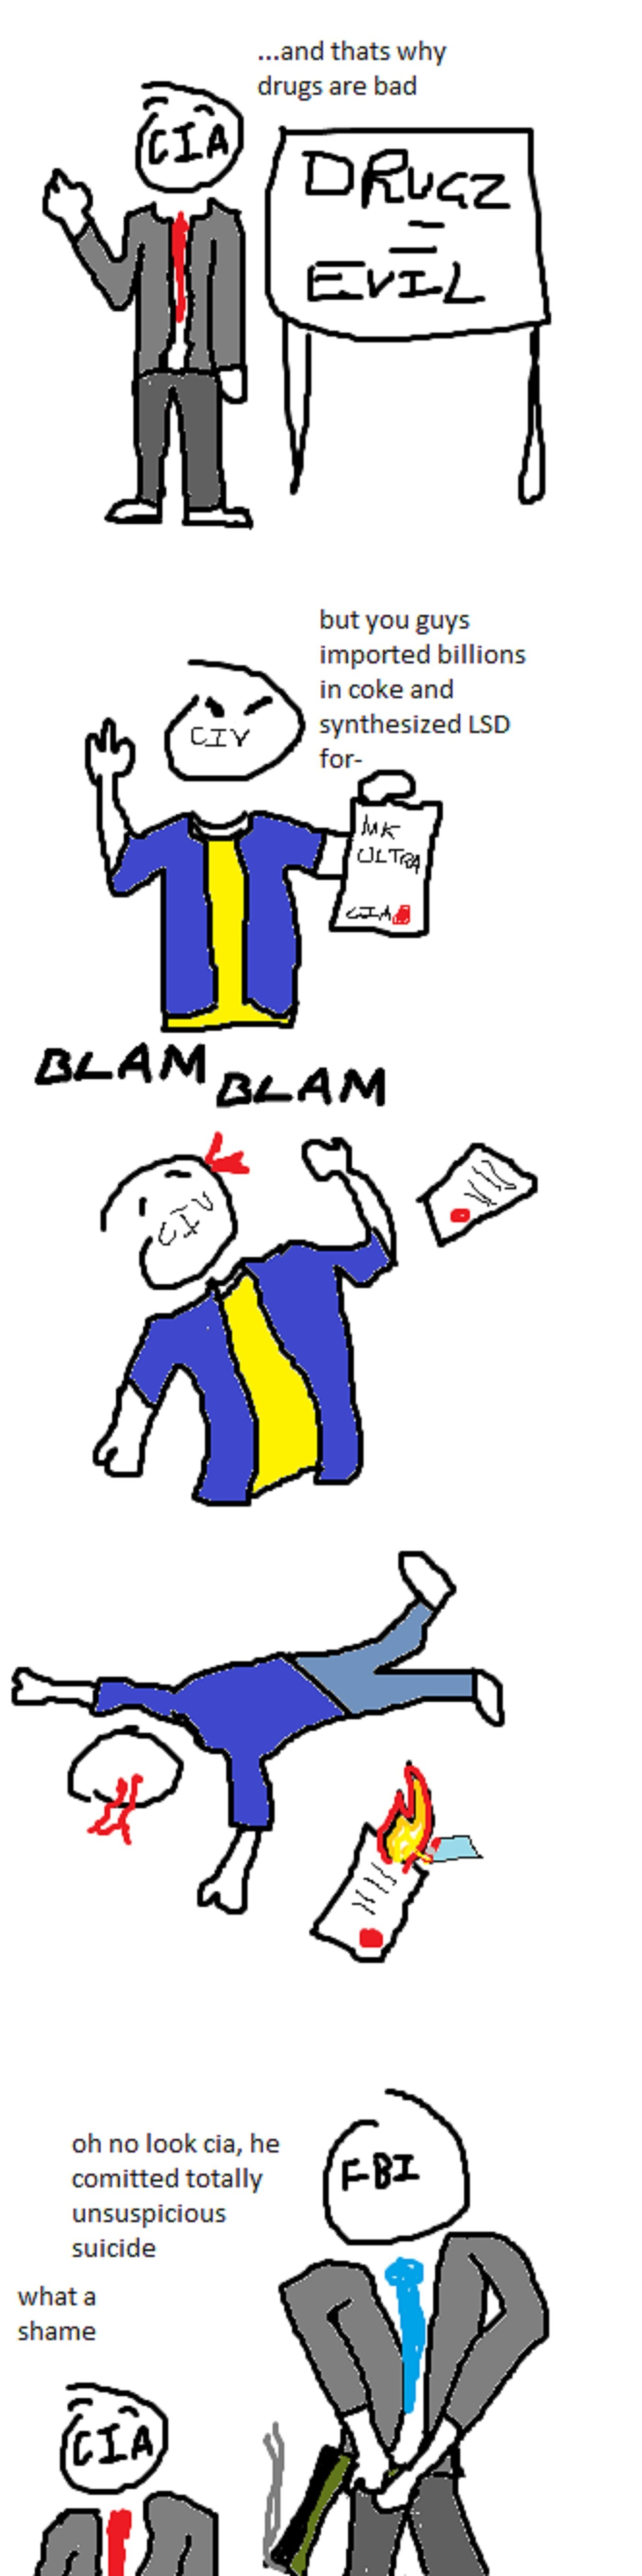 Suicide clipart shame 11/10 drawing 6579a0_6296129 jpg